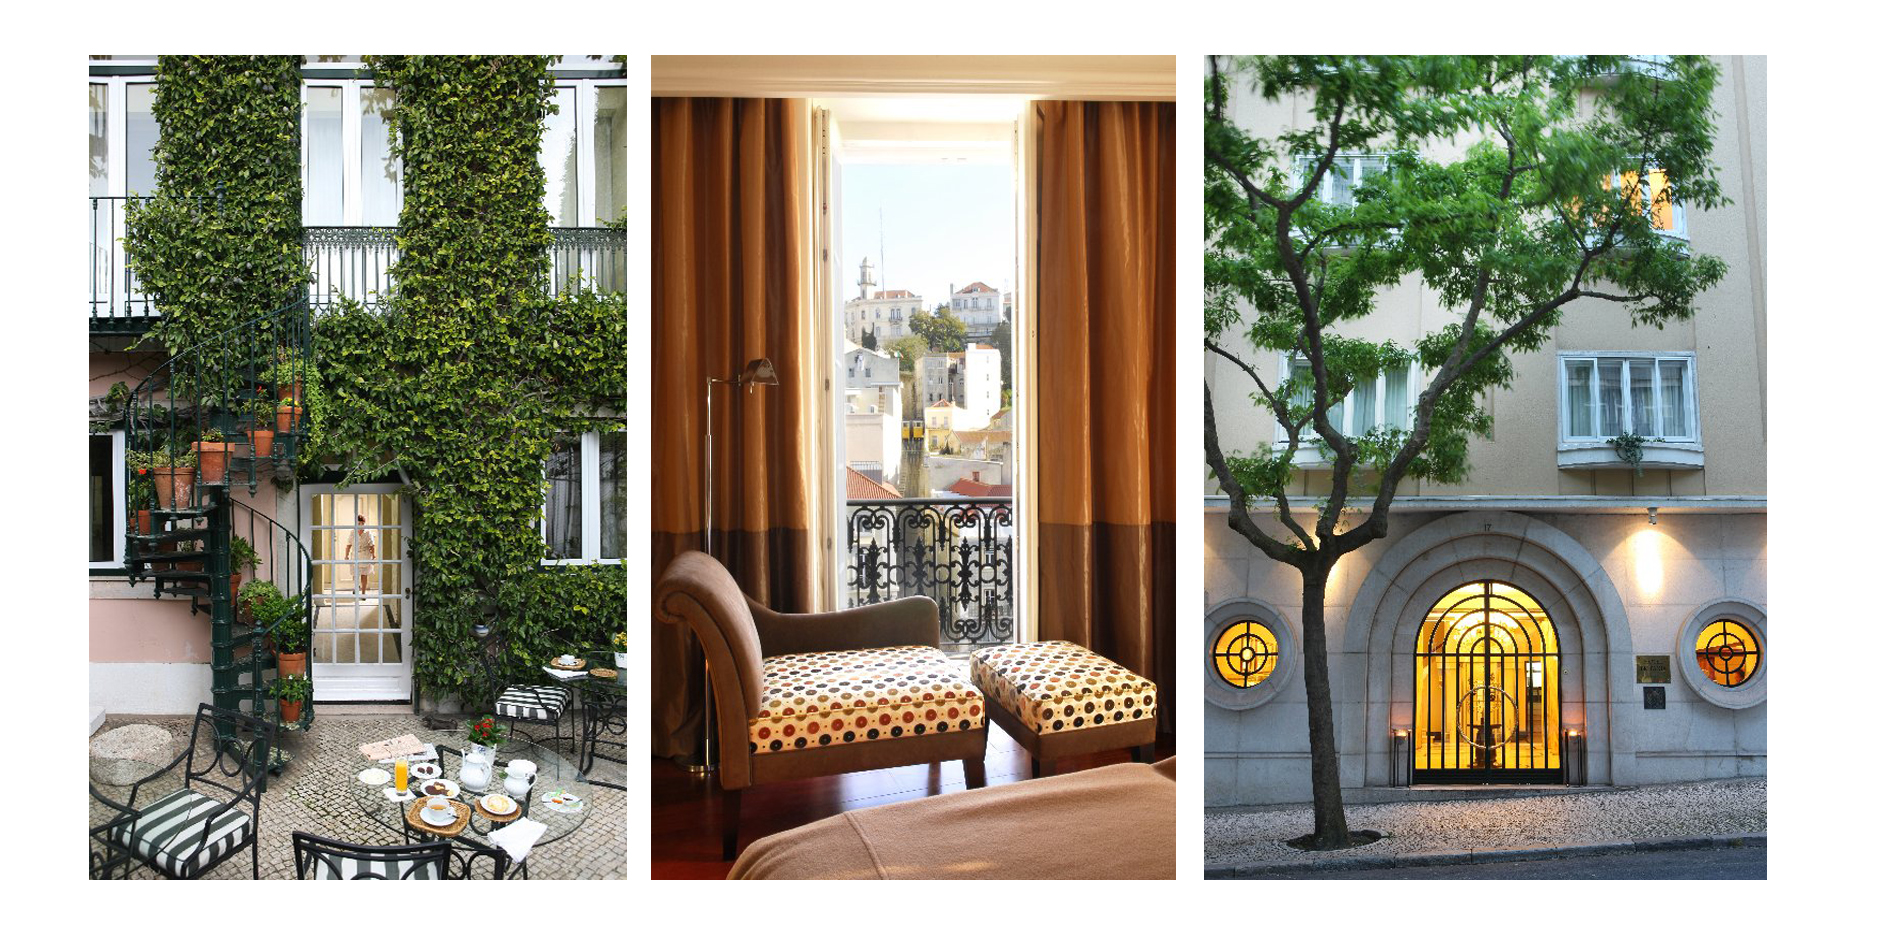 Travellers' Choice Awards 2015 - Heritage Lisbon Hotels among the best